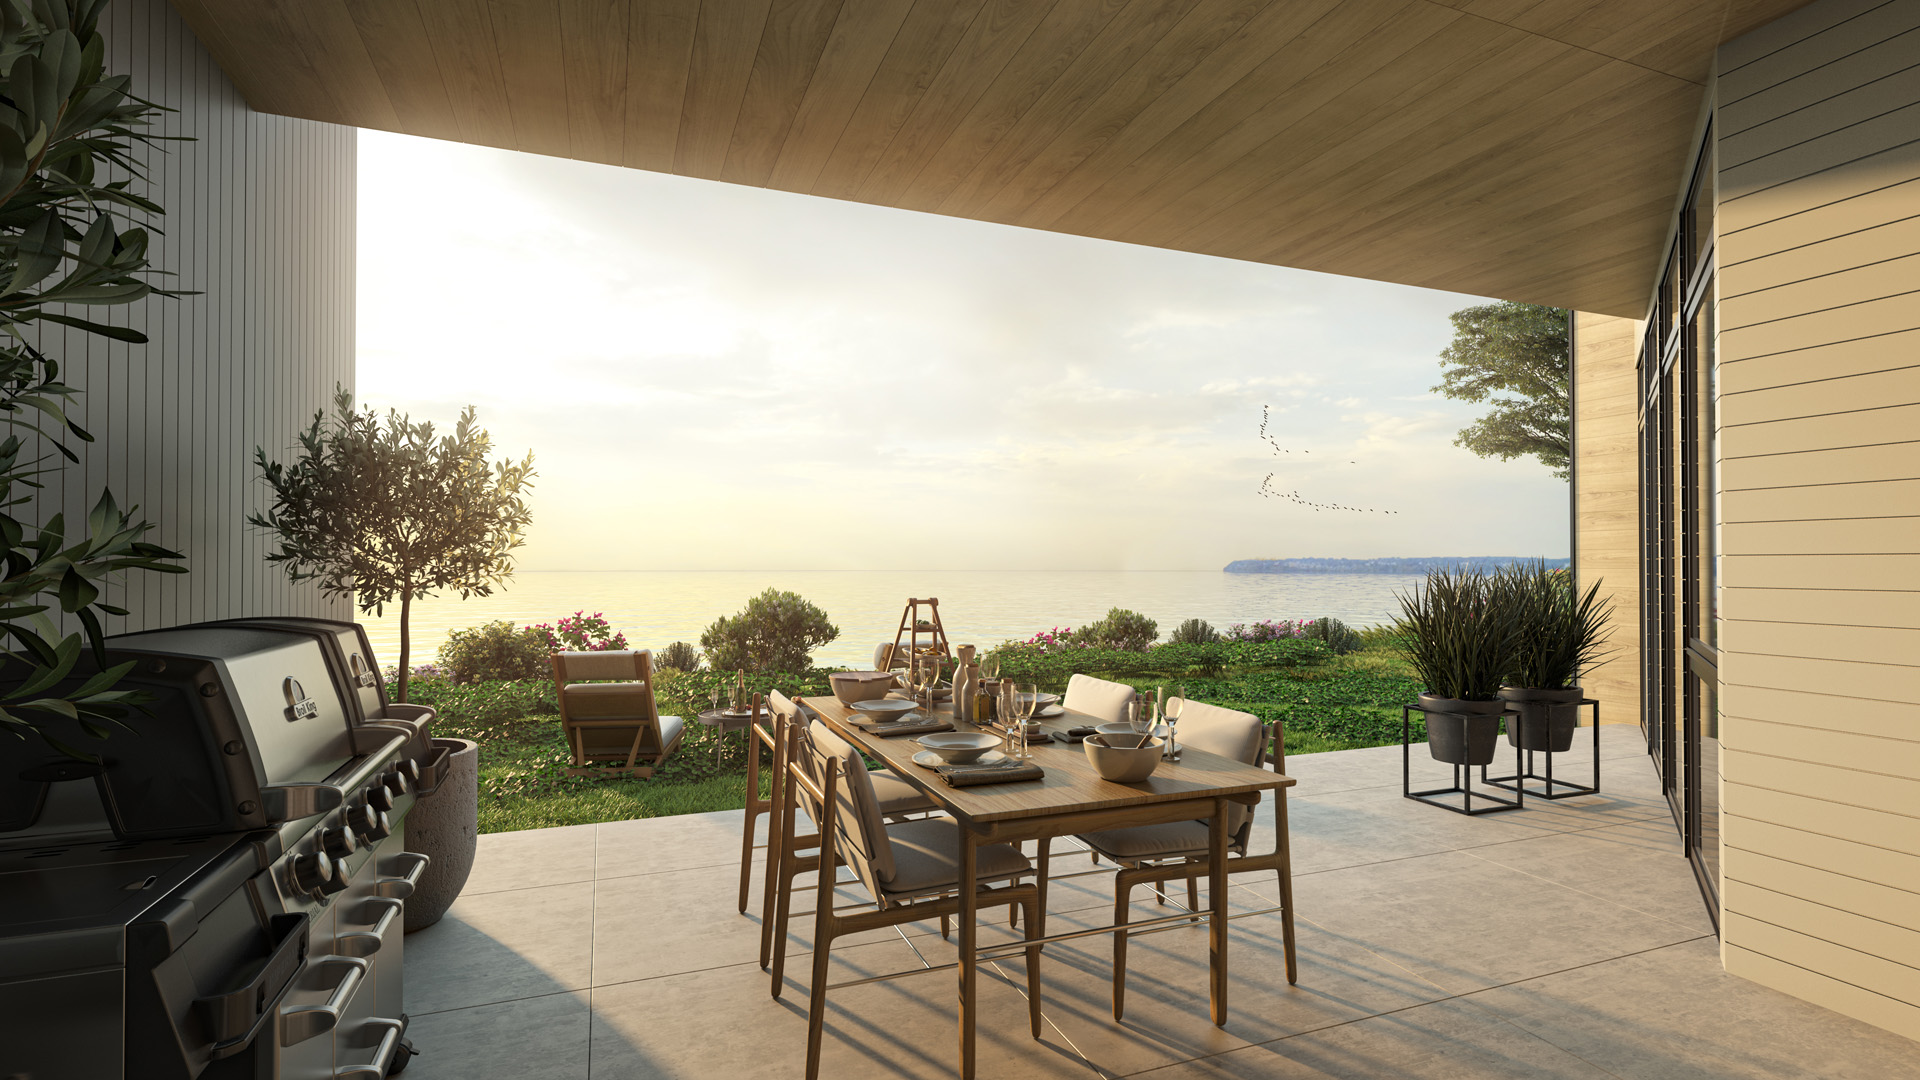 Patio Rendering from Pacific Point Unit C Ground Floor